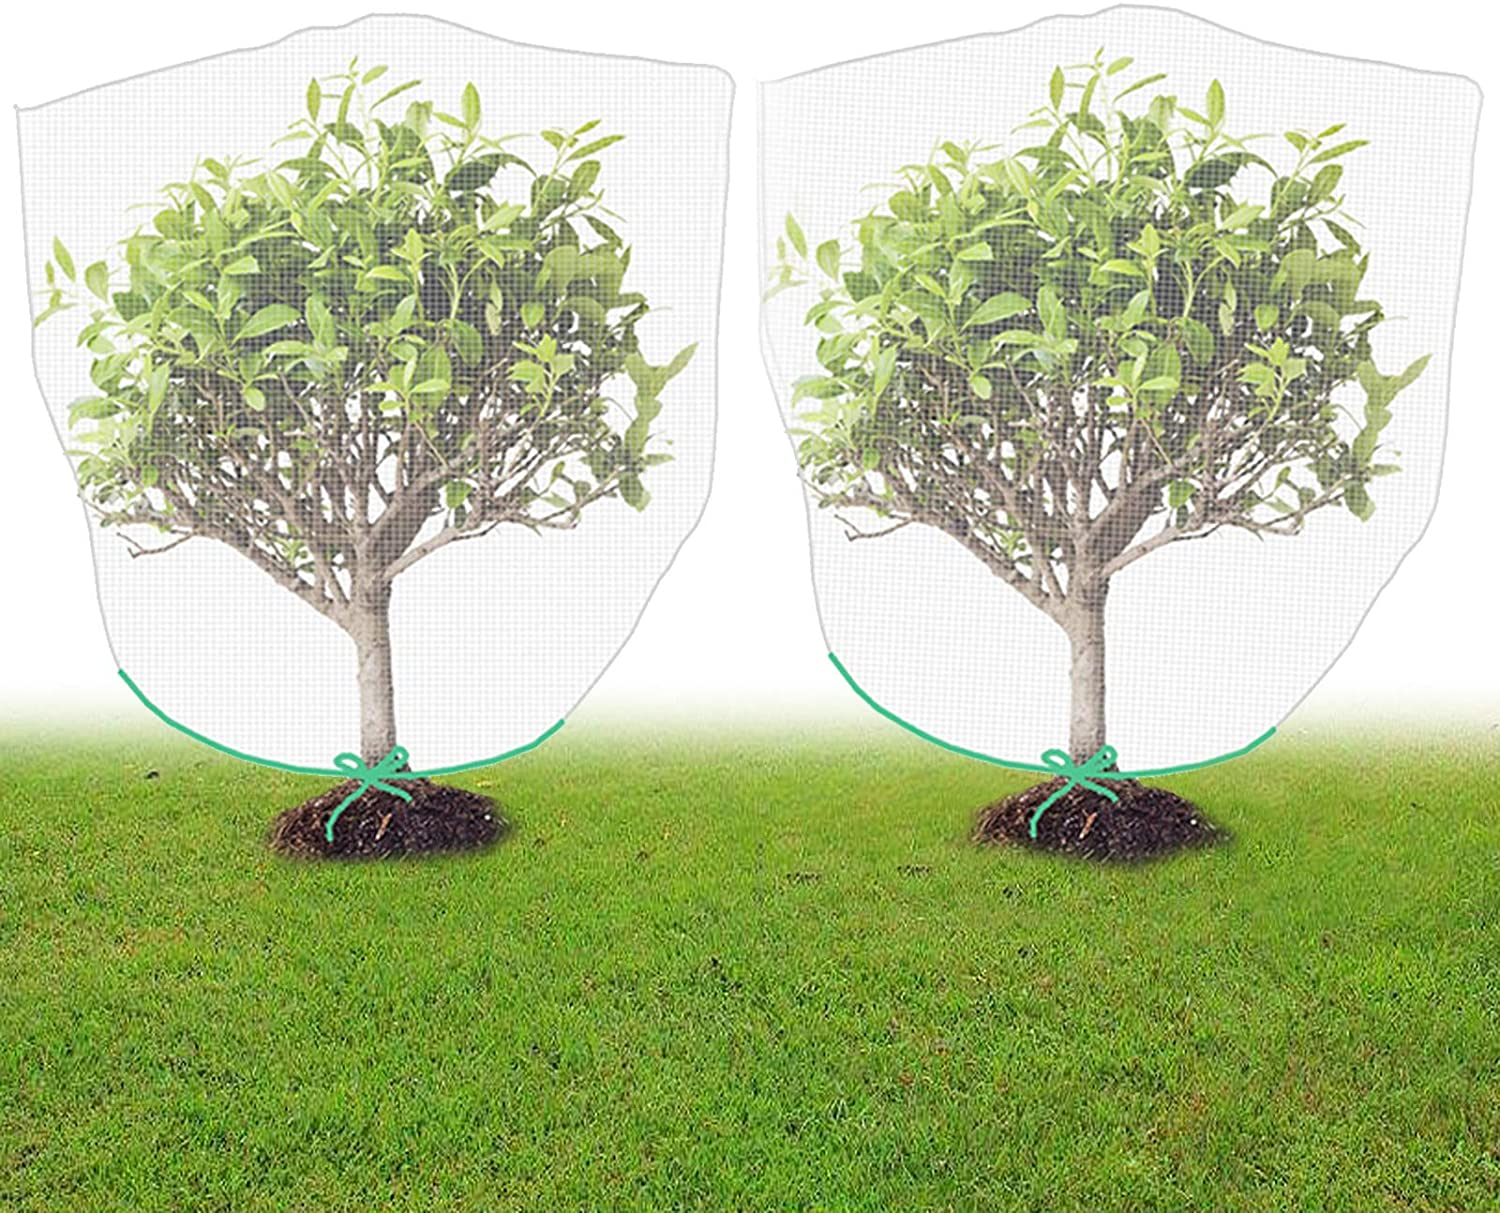 FLYING TIGER 2pcs Bird Netting for Garden and Plant, Pest Netting for Plant in Shape Bag with Rope, 4.6x4ft/1.4x1.2m